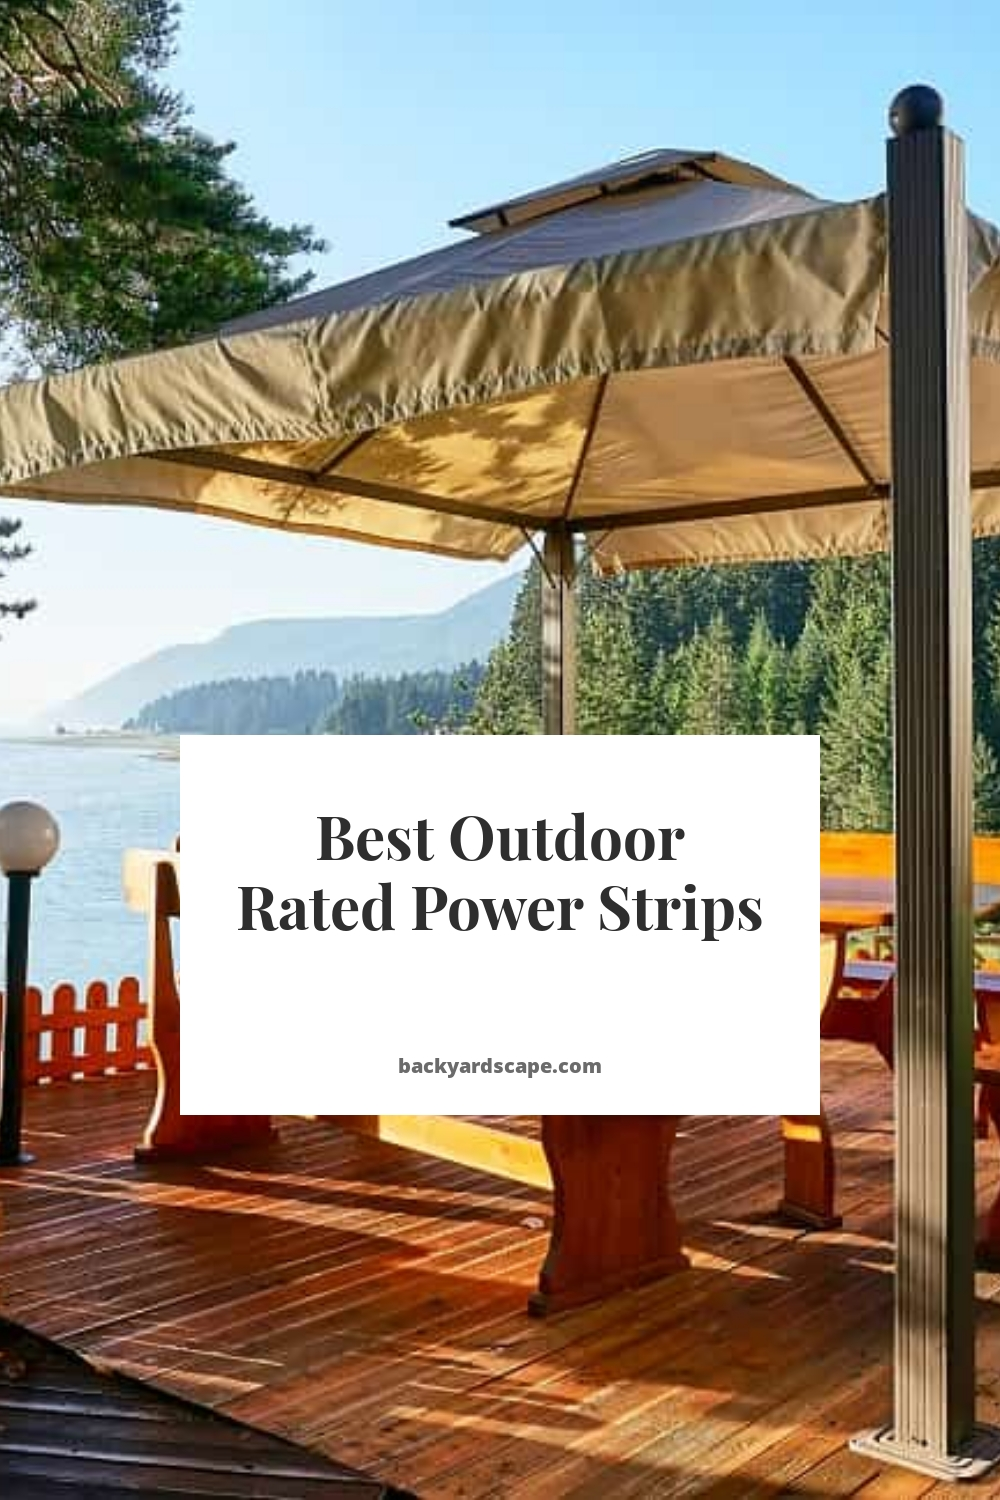 Best Outdoor Rated Power Strips